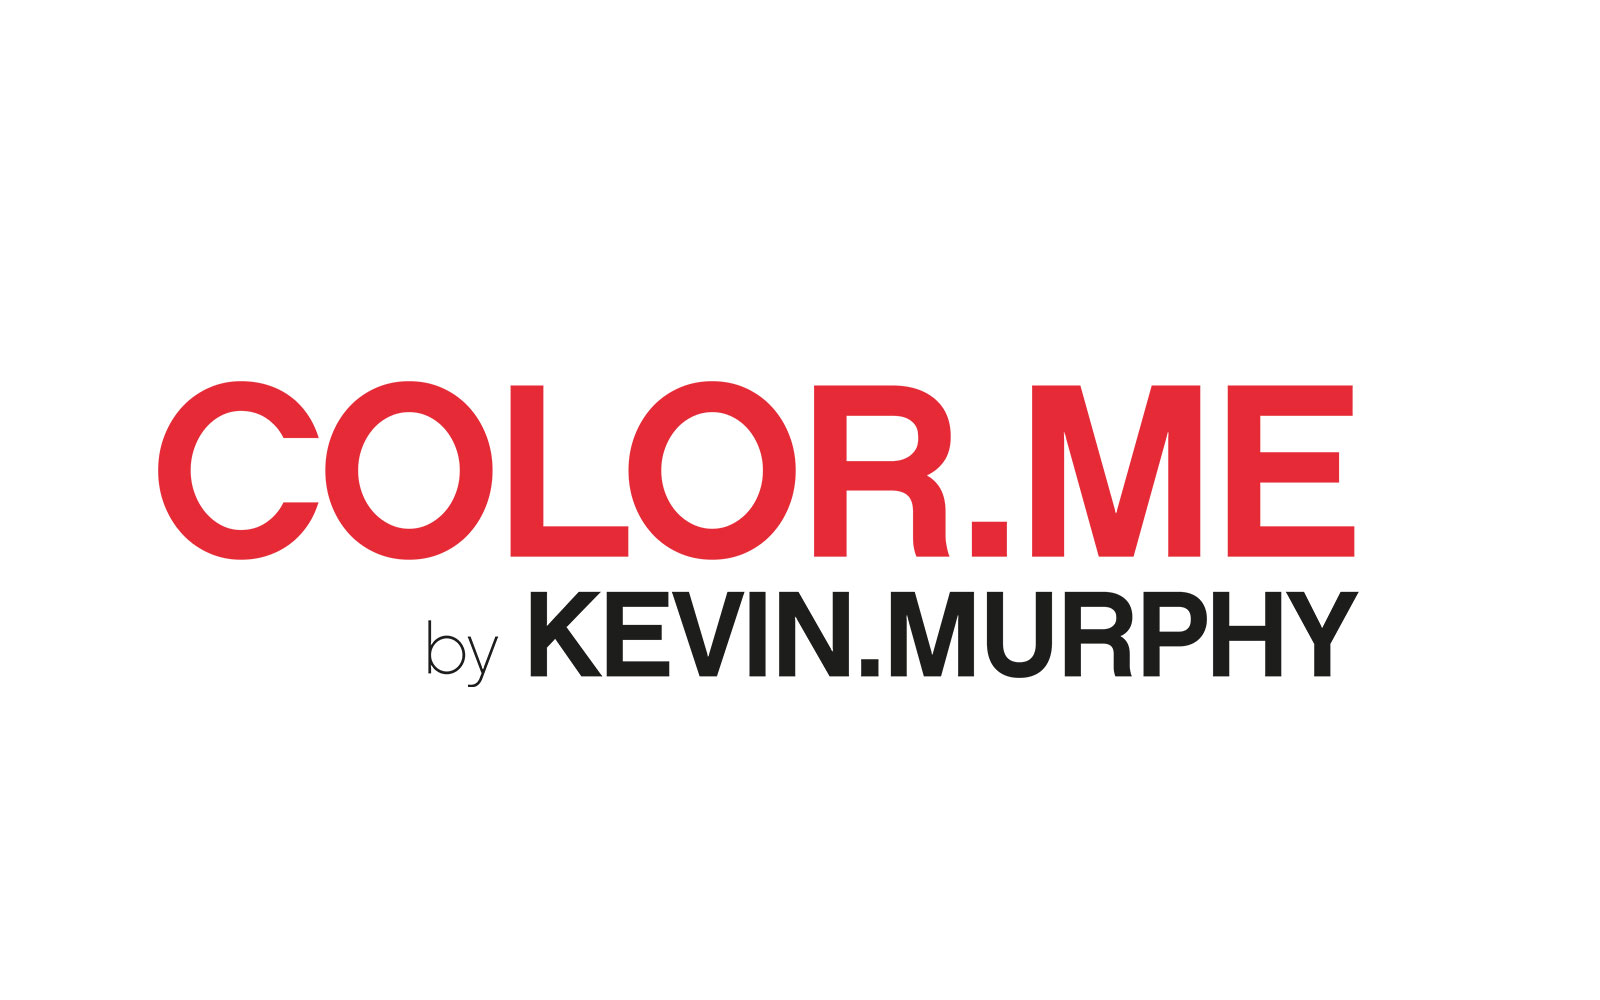 Color Me by Kevin Murphy